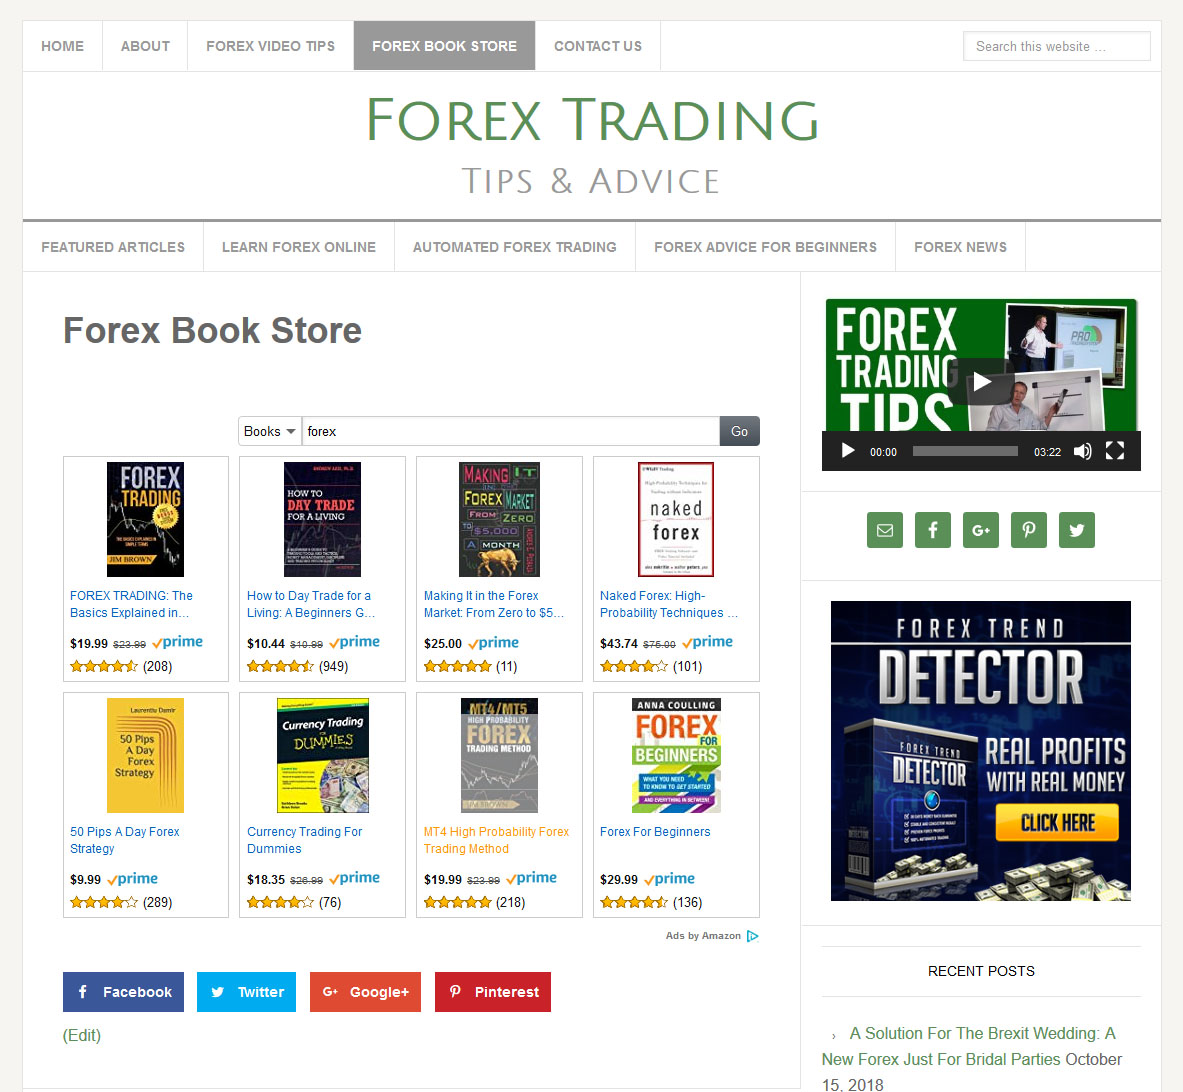 Top 10 forex news websites